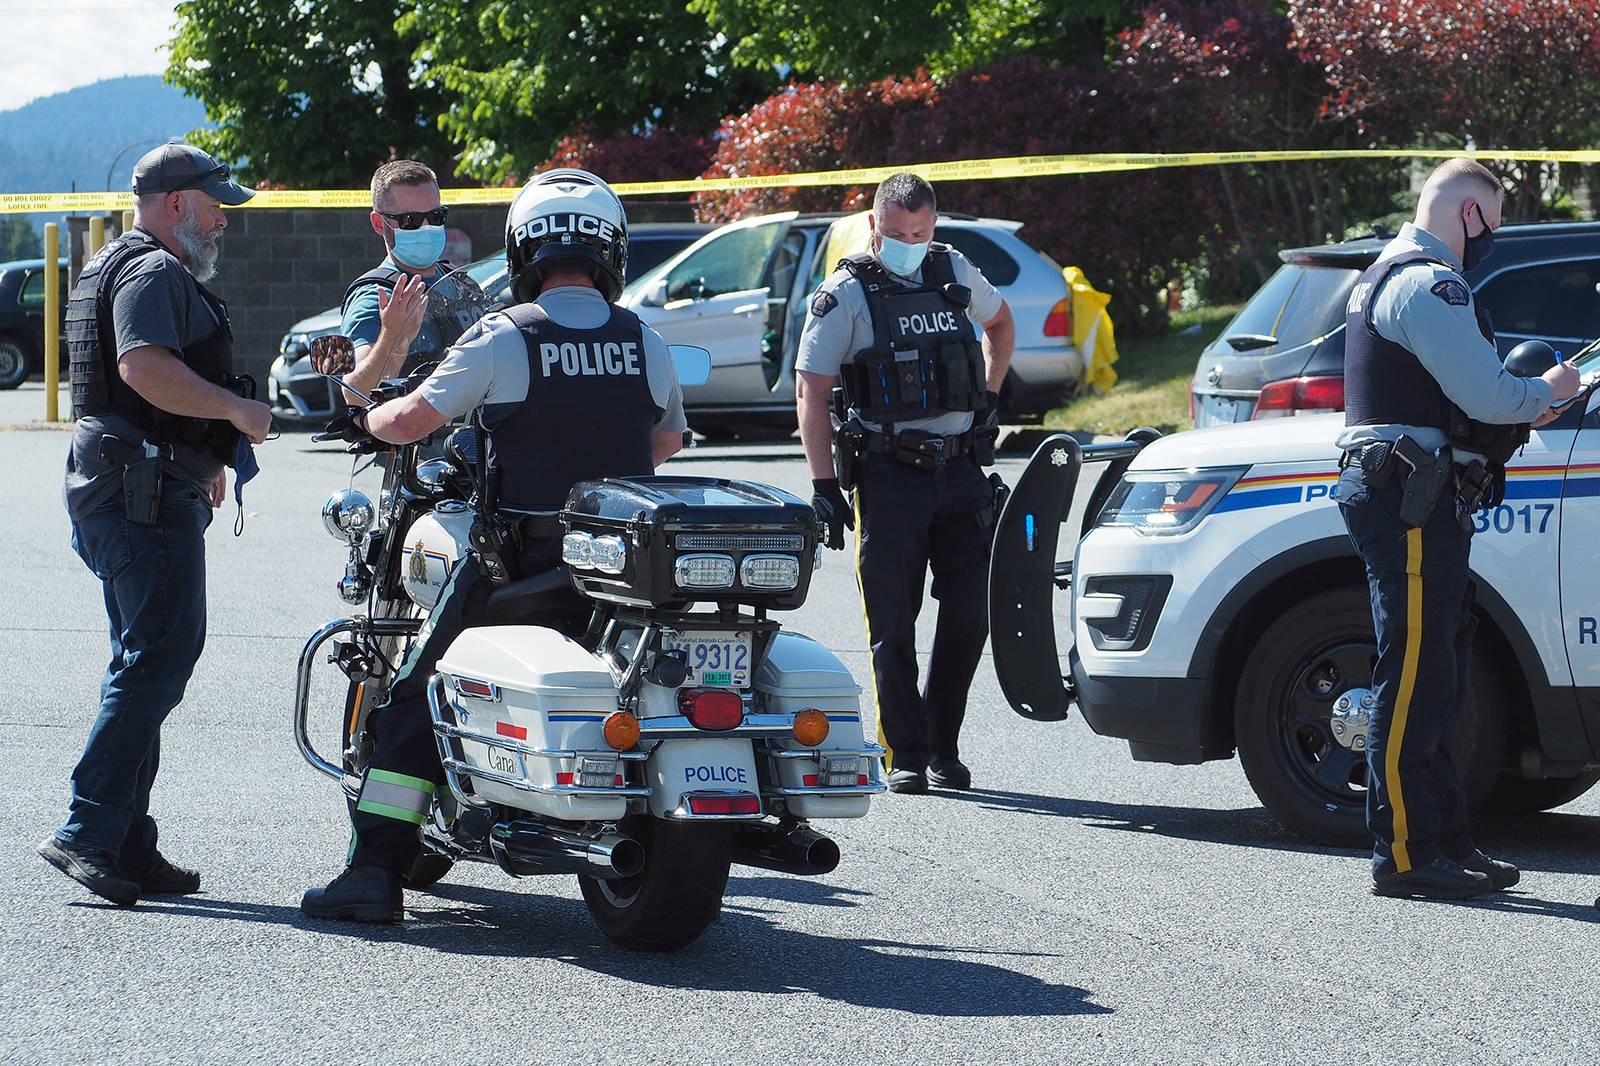 RCMP on scene at Rock City Centre in Nanaimo following reports of shots fired. RCMP confirmed one person died in the incident. (Chris Bush/News Bulletin)